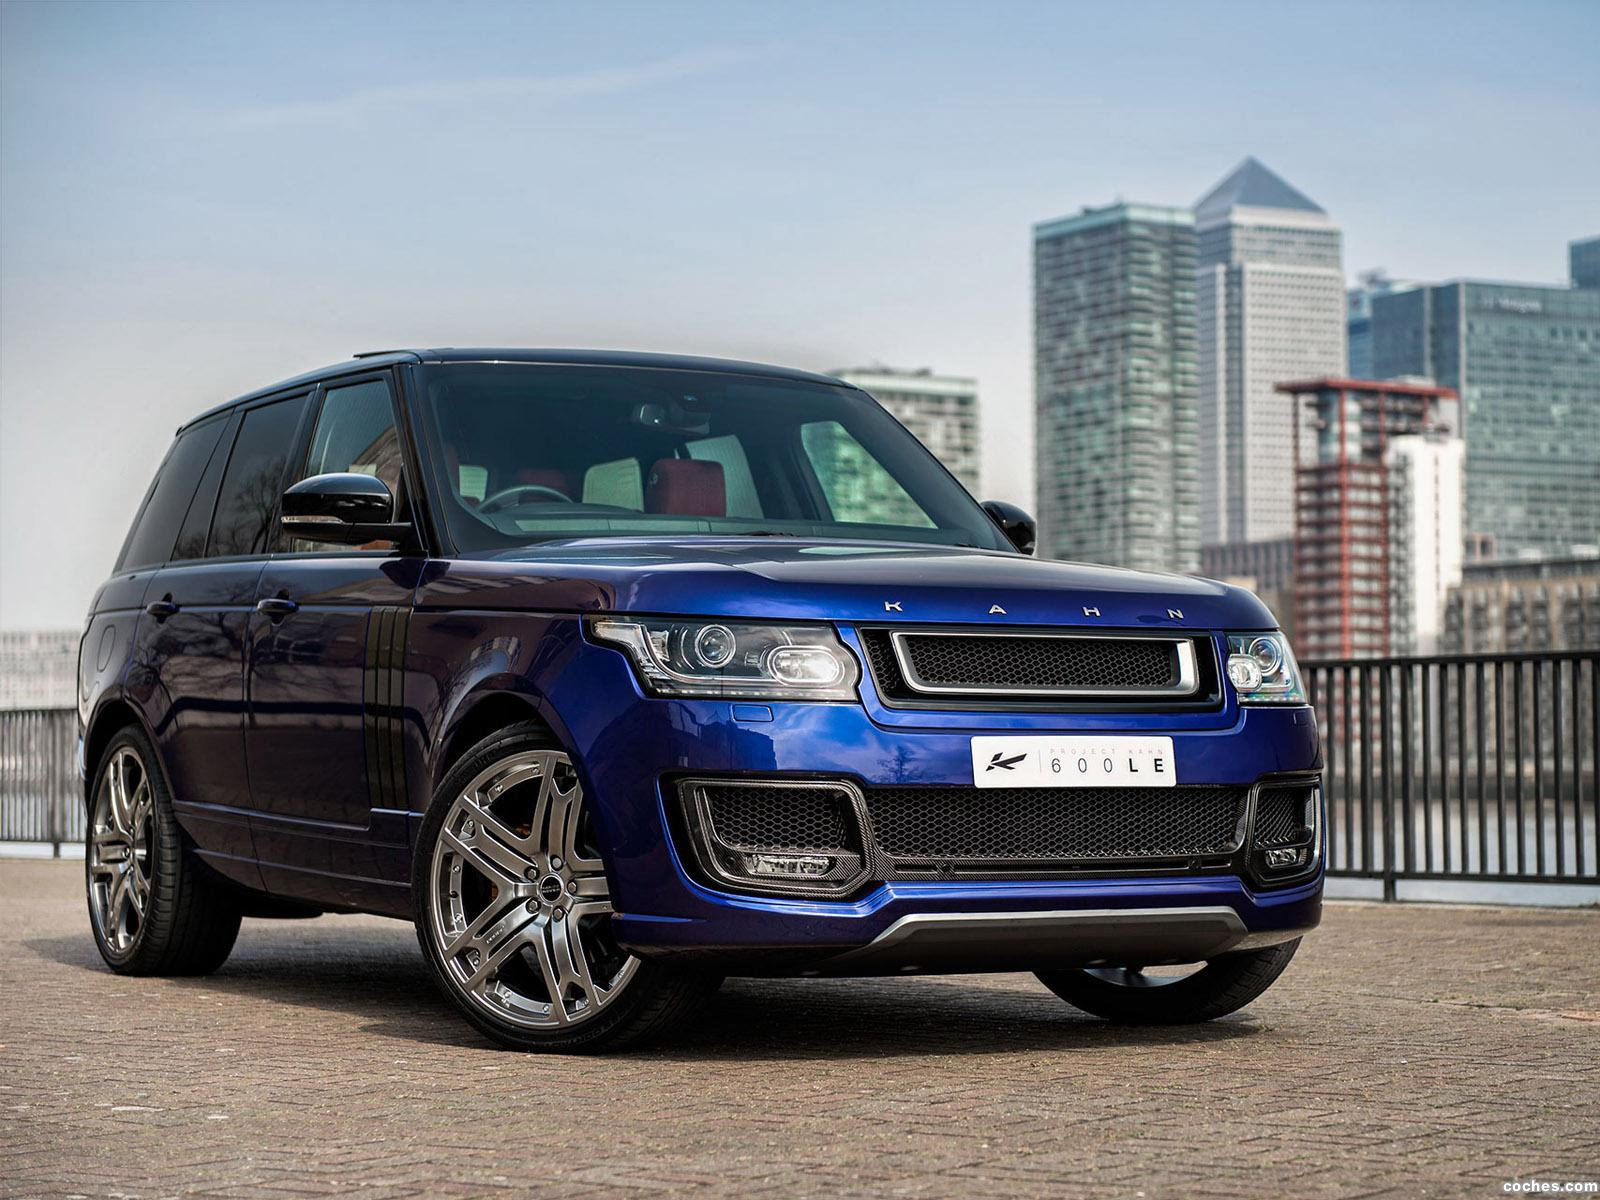 Foto 0 de Project Kahn Land Rover Range Rover 600 LE Bali Blue Luxury E 2014